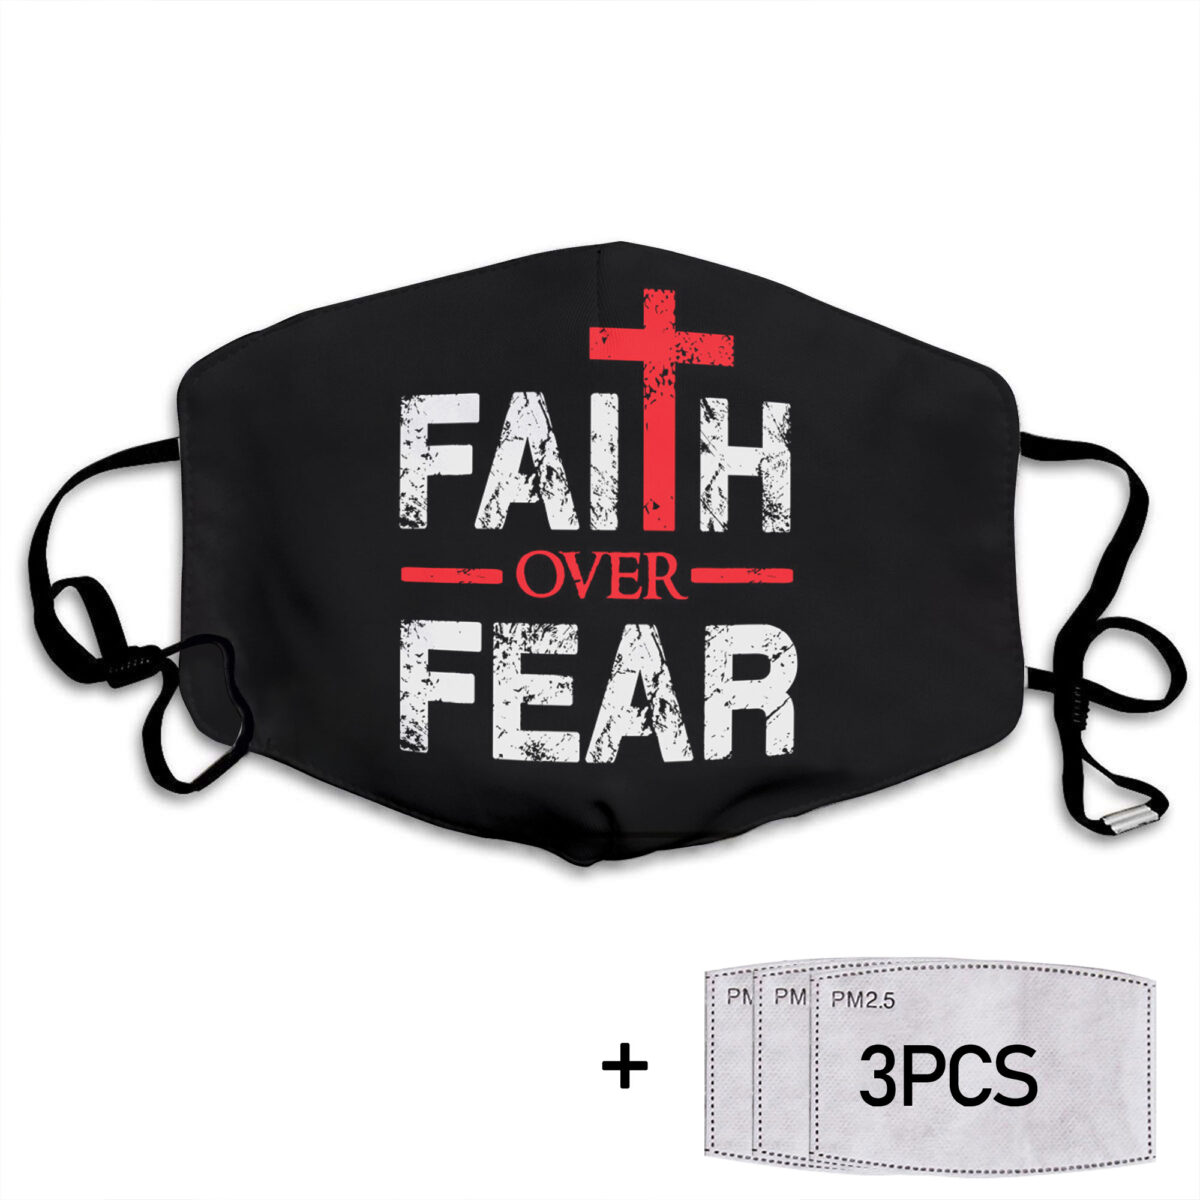 Gopostore_Jesus_Faith Over Fear_SHM3007005_fma (2).jpg